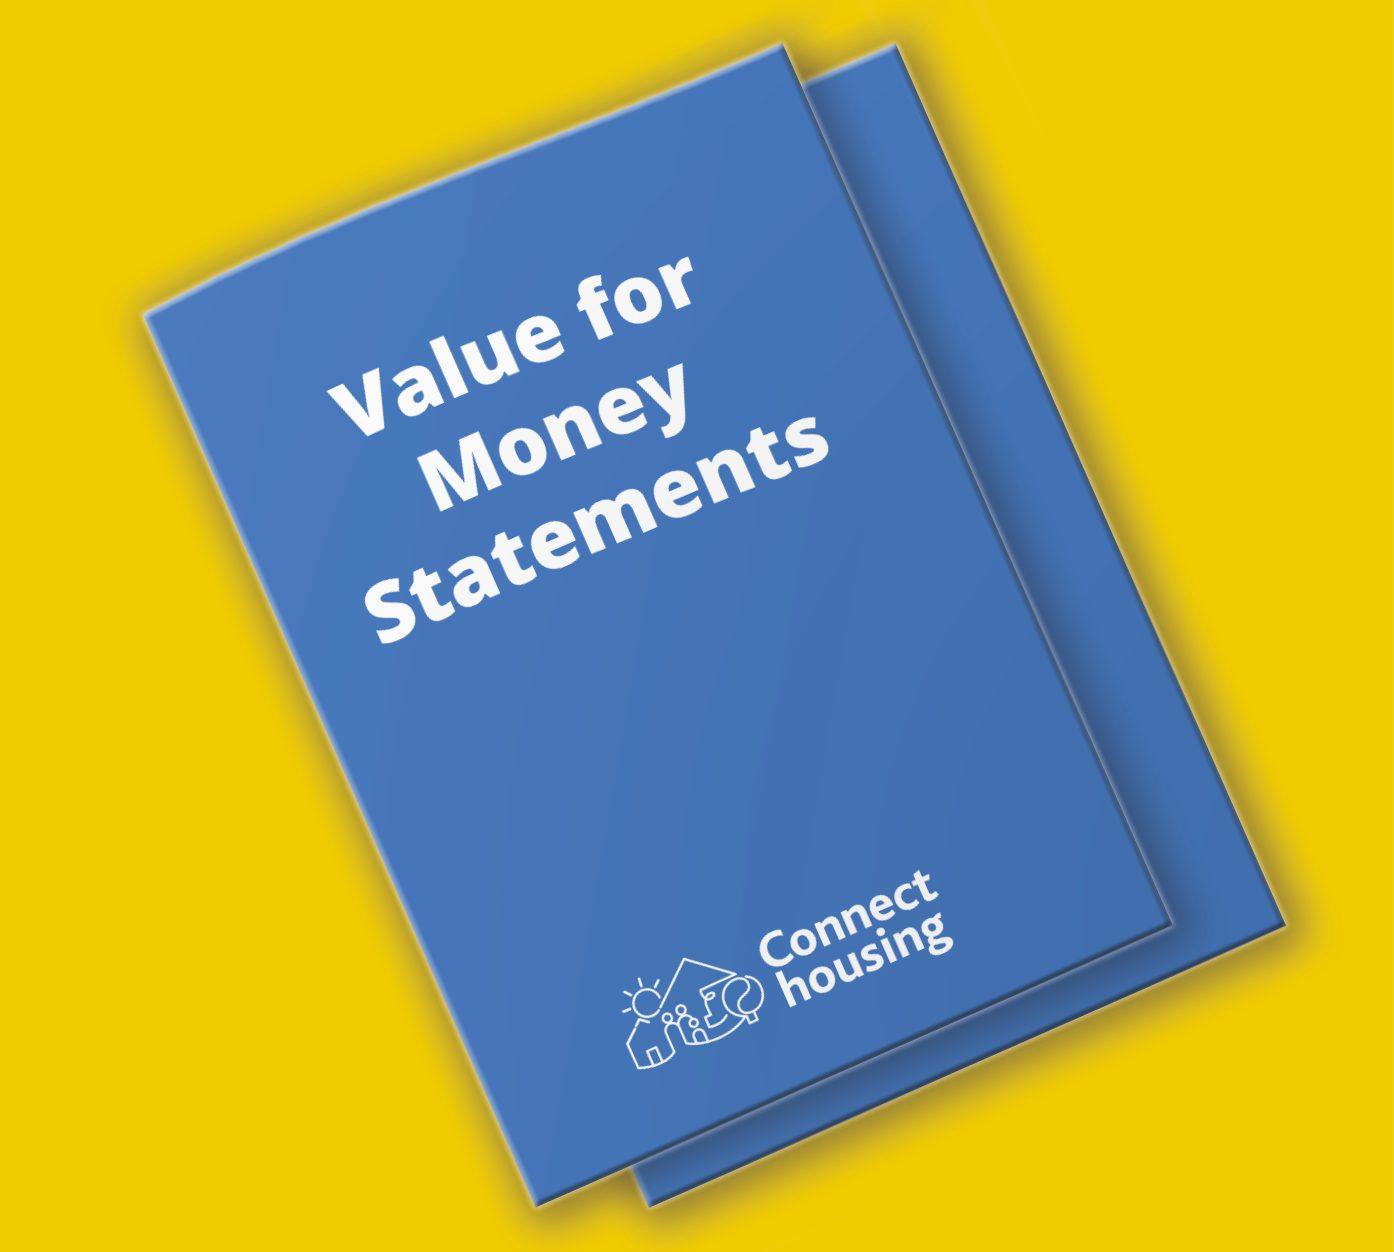 Value for money statements